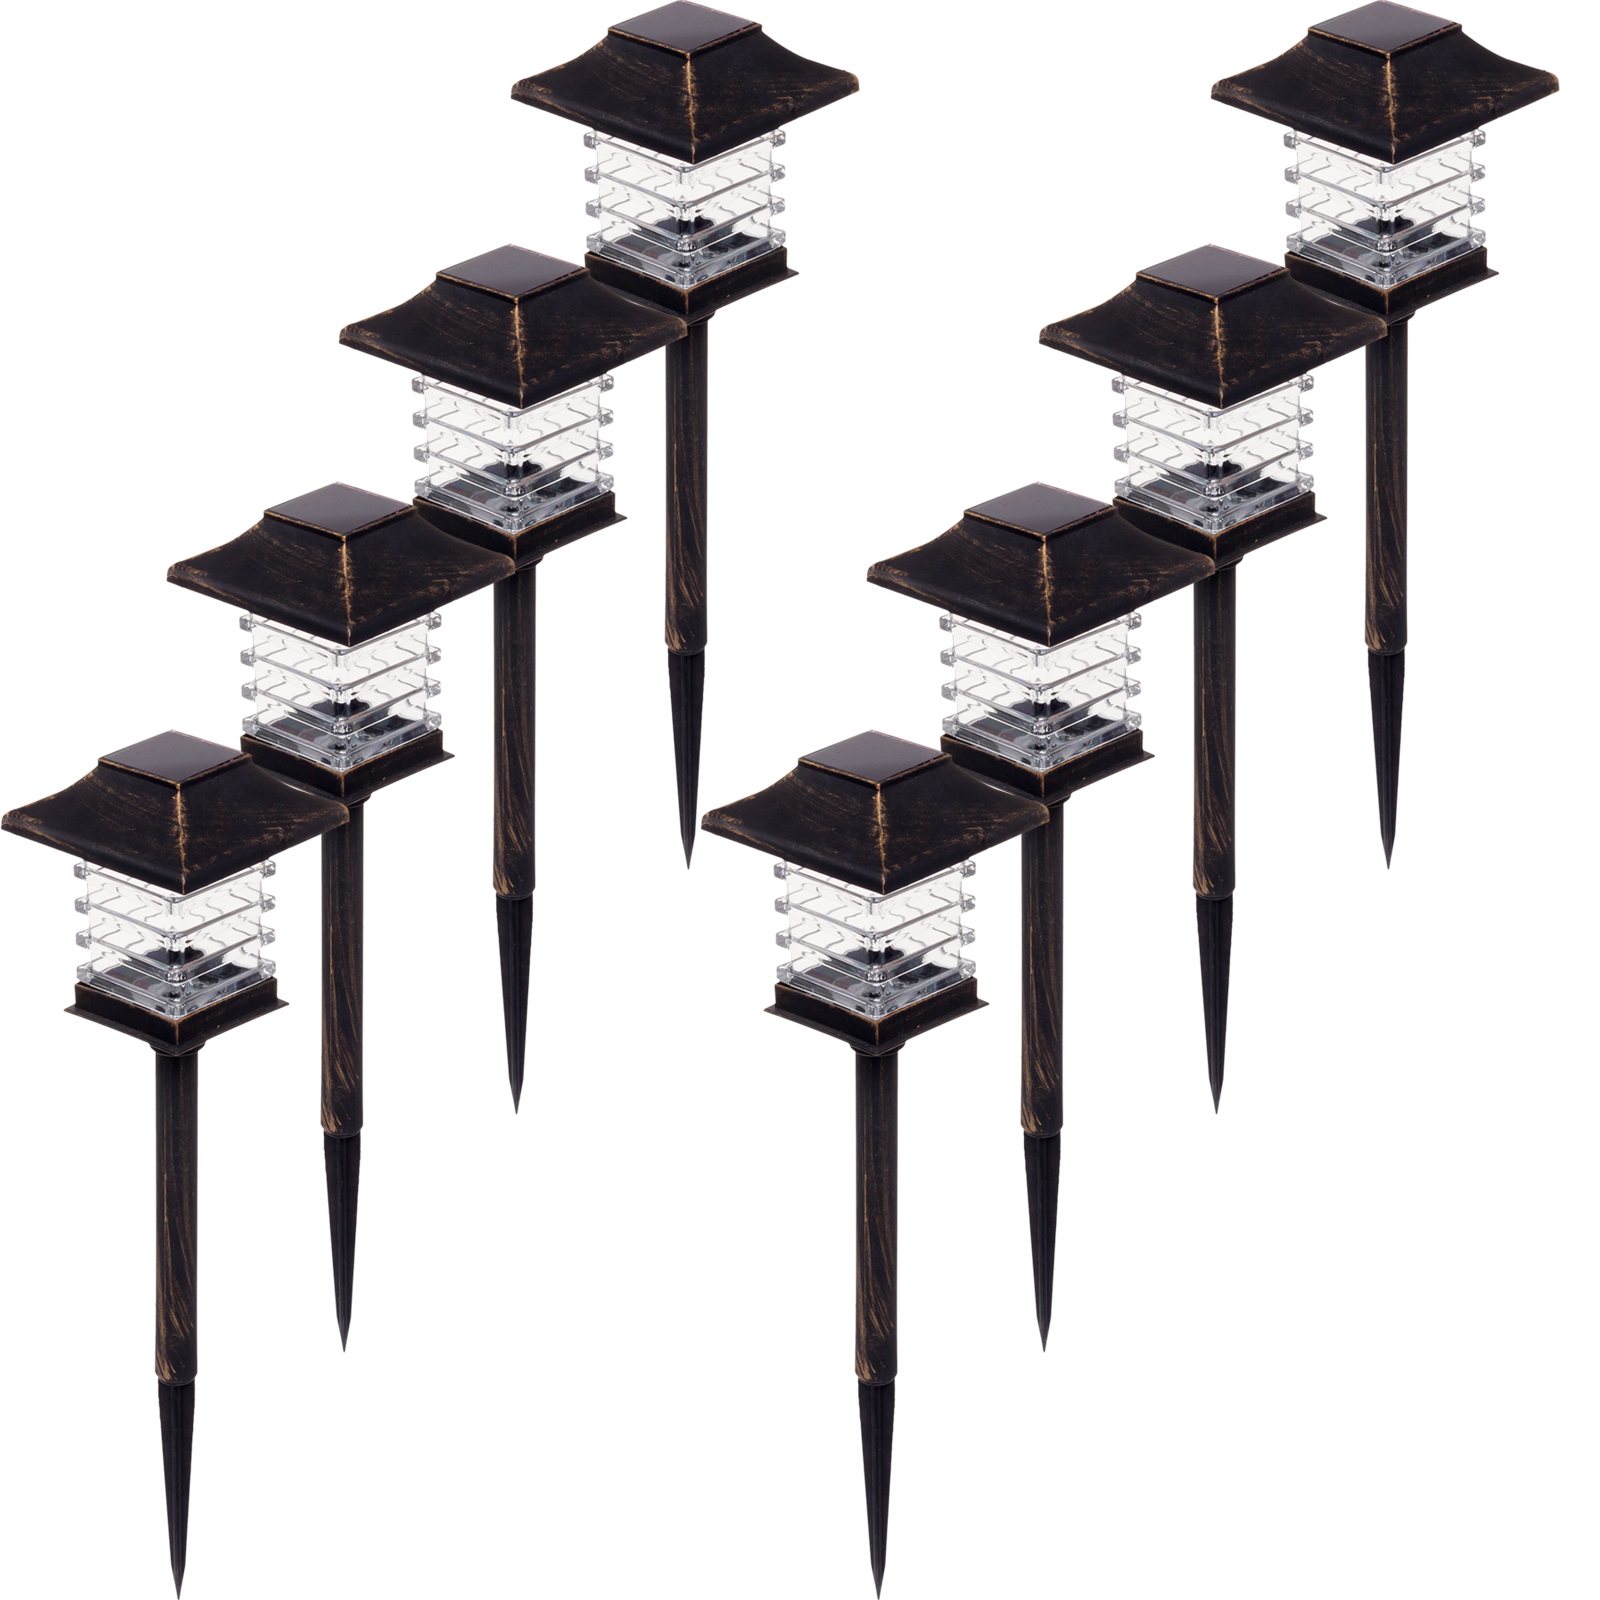 Greenlighting New Black w  Brushed Gold-Tone Solar LED Path Way Lights (8 Pack) by GreenLighting